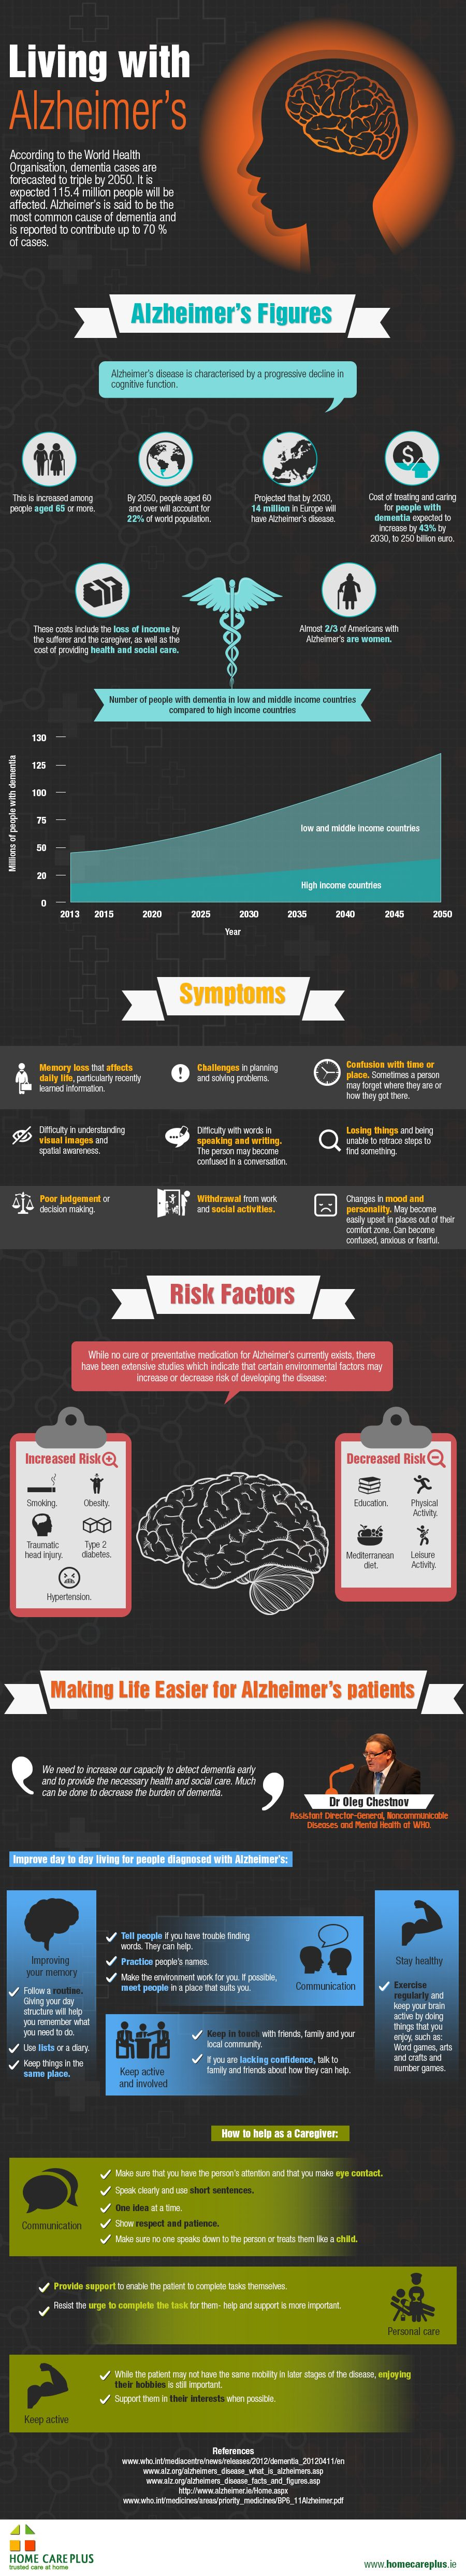 Living with Alzheimers Disease - an infographic